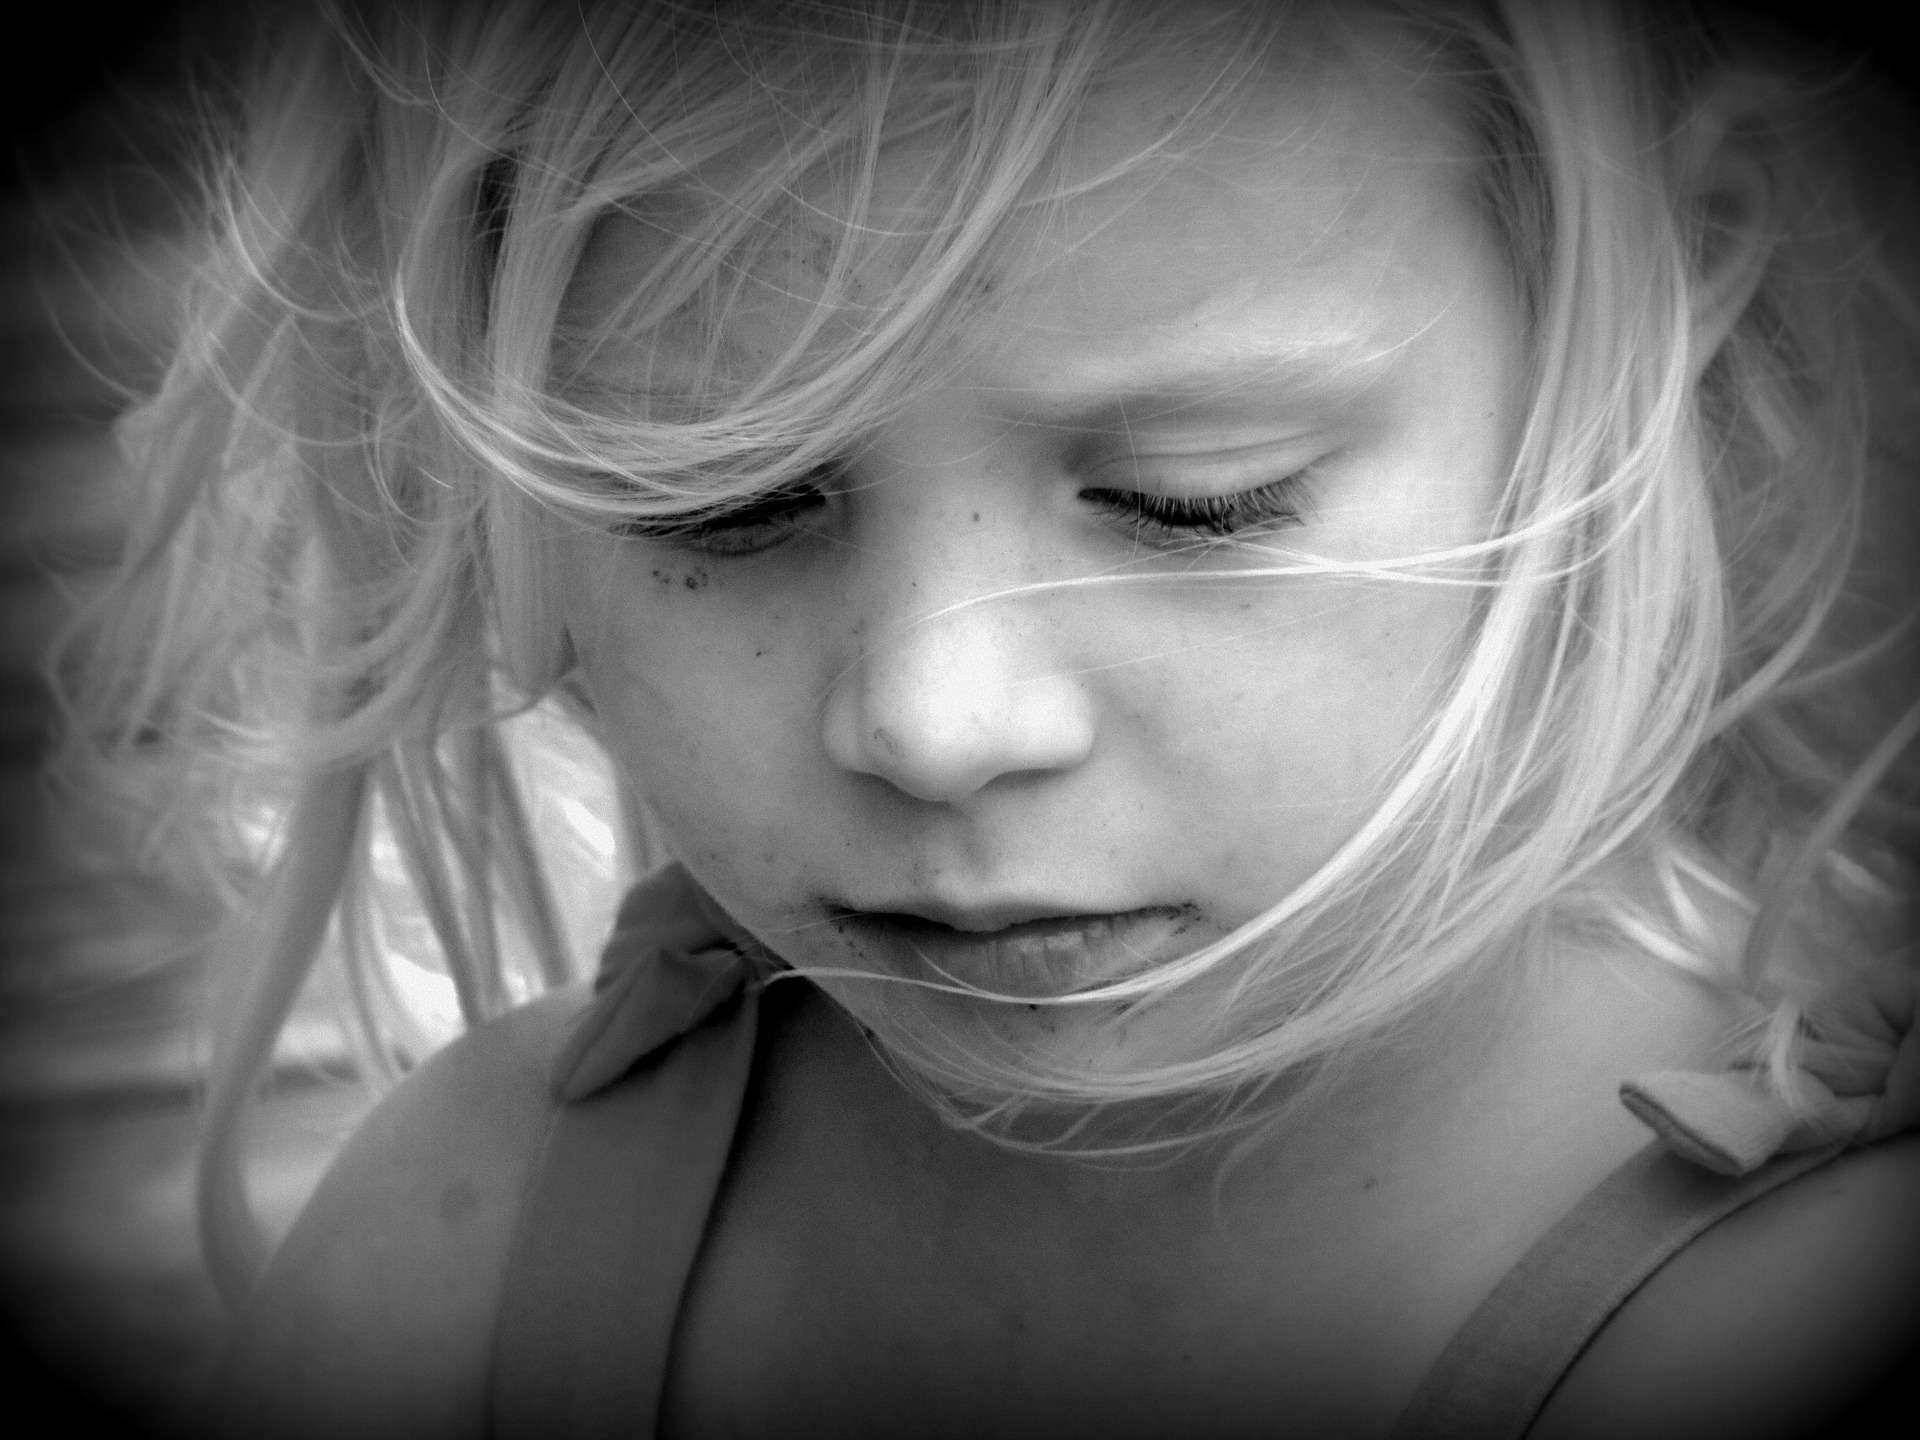 Little blond girl looking down